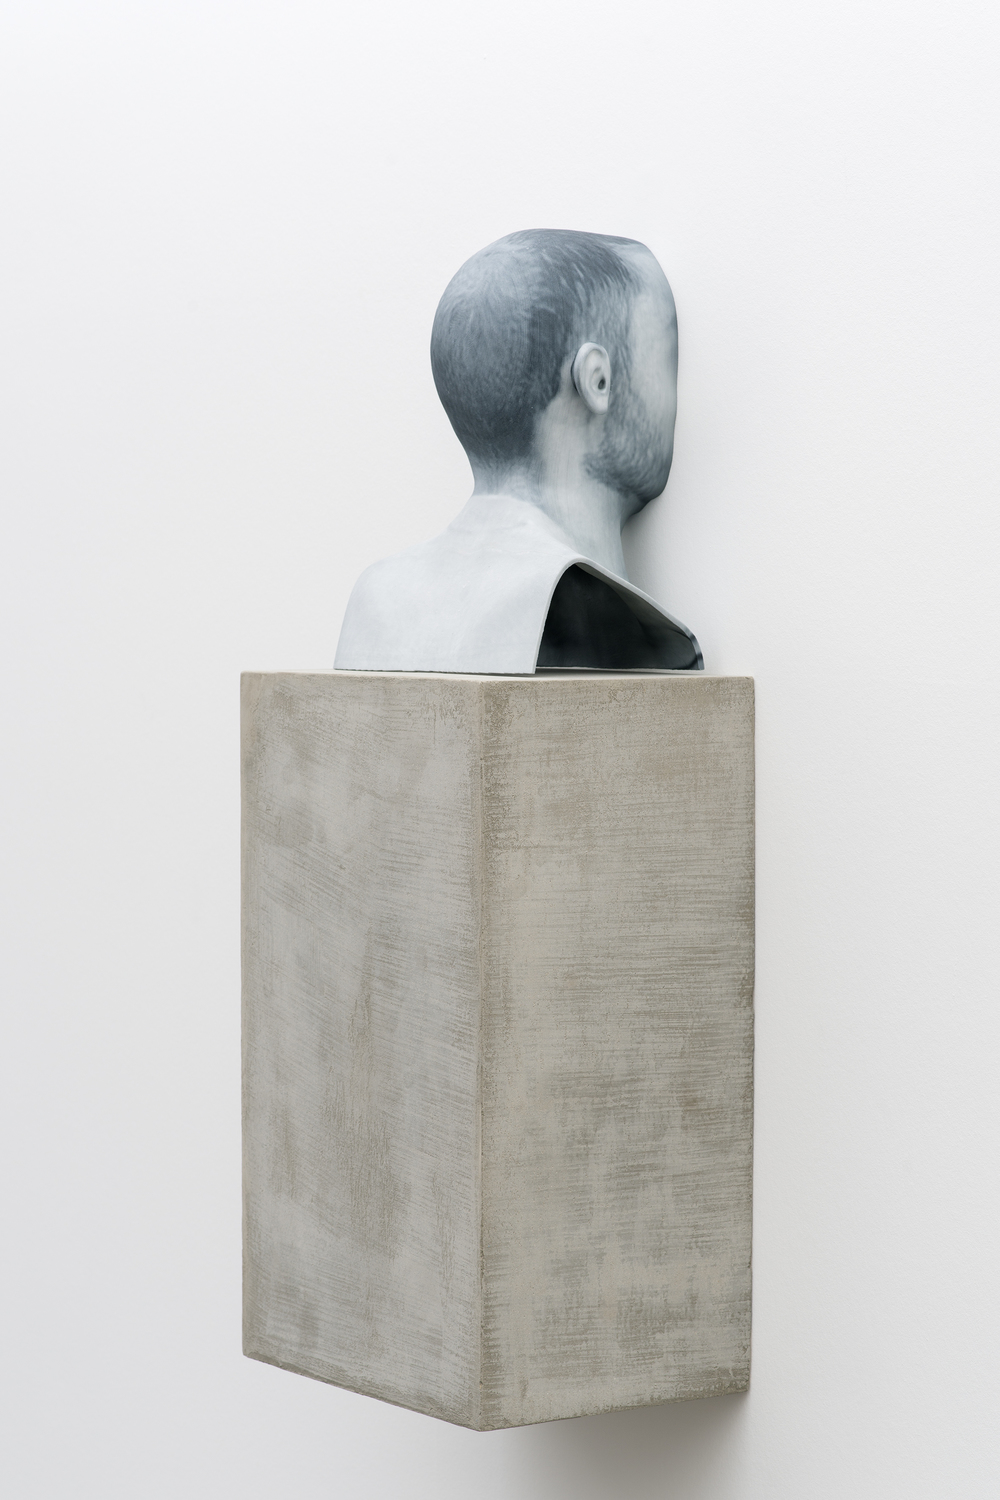 Man of Words (4) 2014 Pigmented plaster ZPrint, concrete  32.25 x 12 x 9 inches